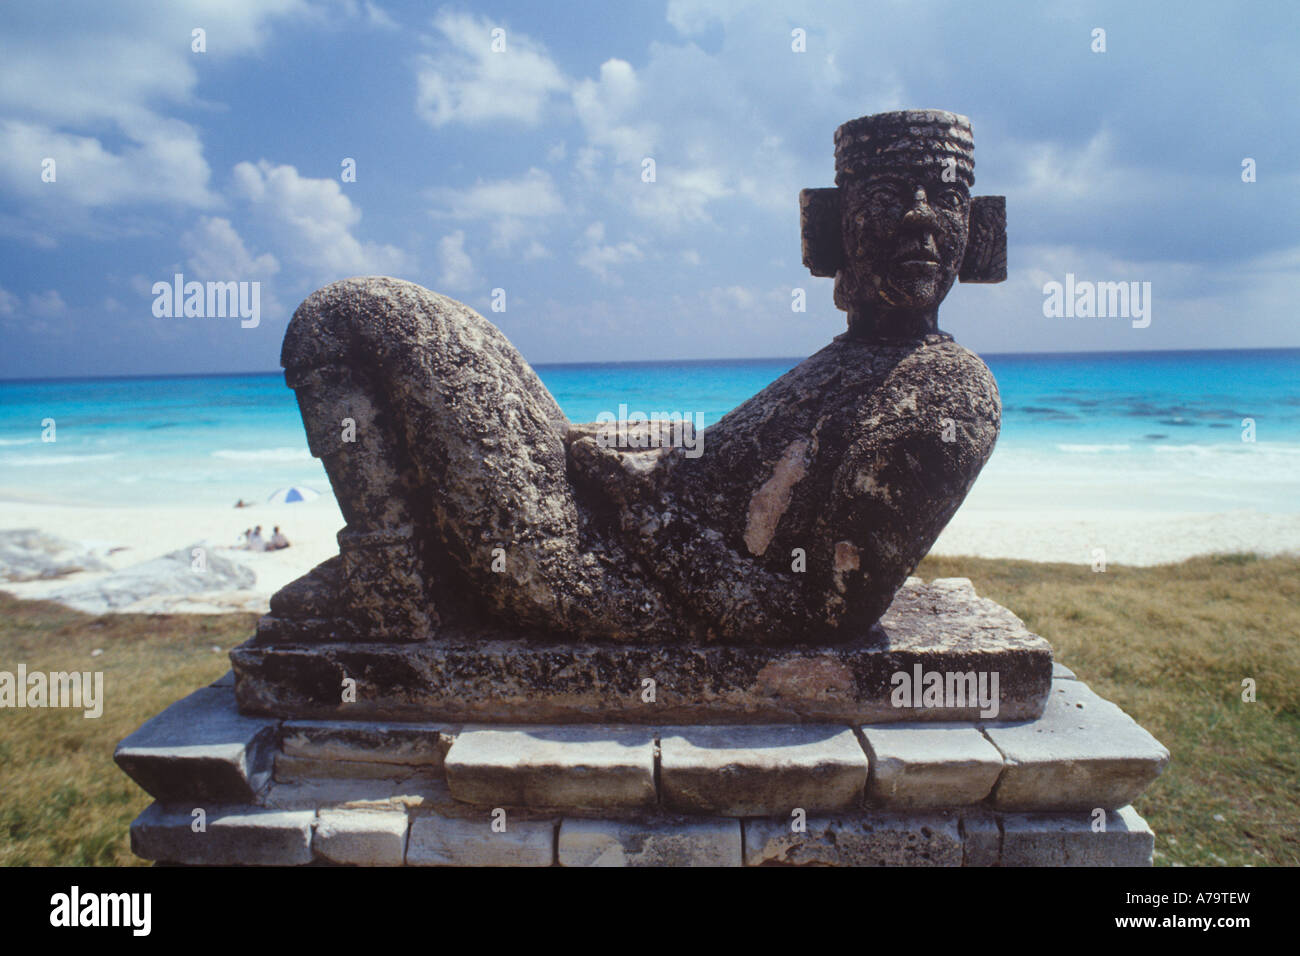 Replica  of the mayan statue Chac Mol on beach in Cancun, Mexico - Stock Image